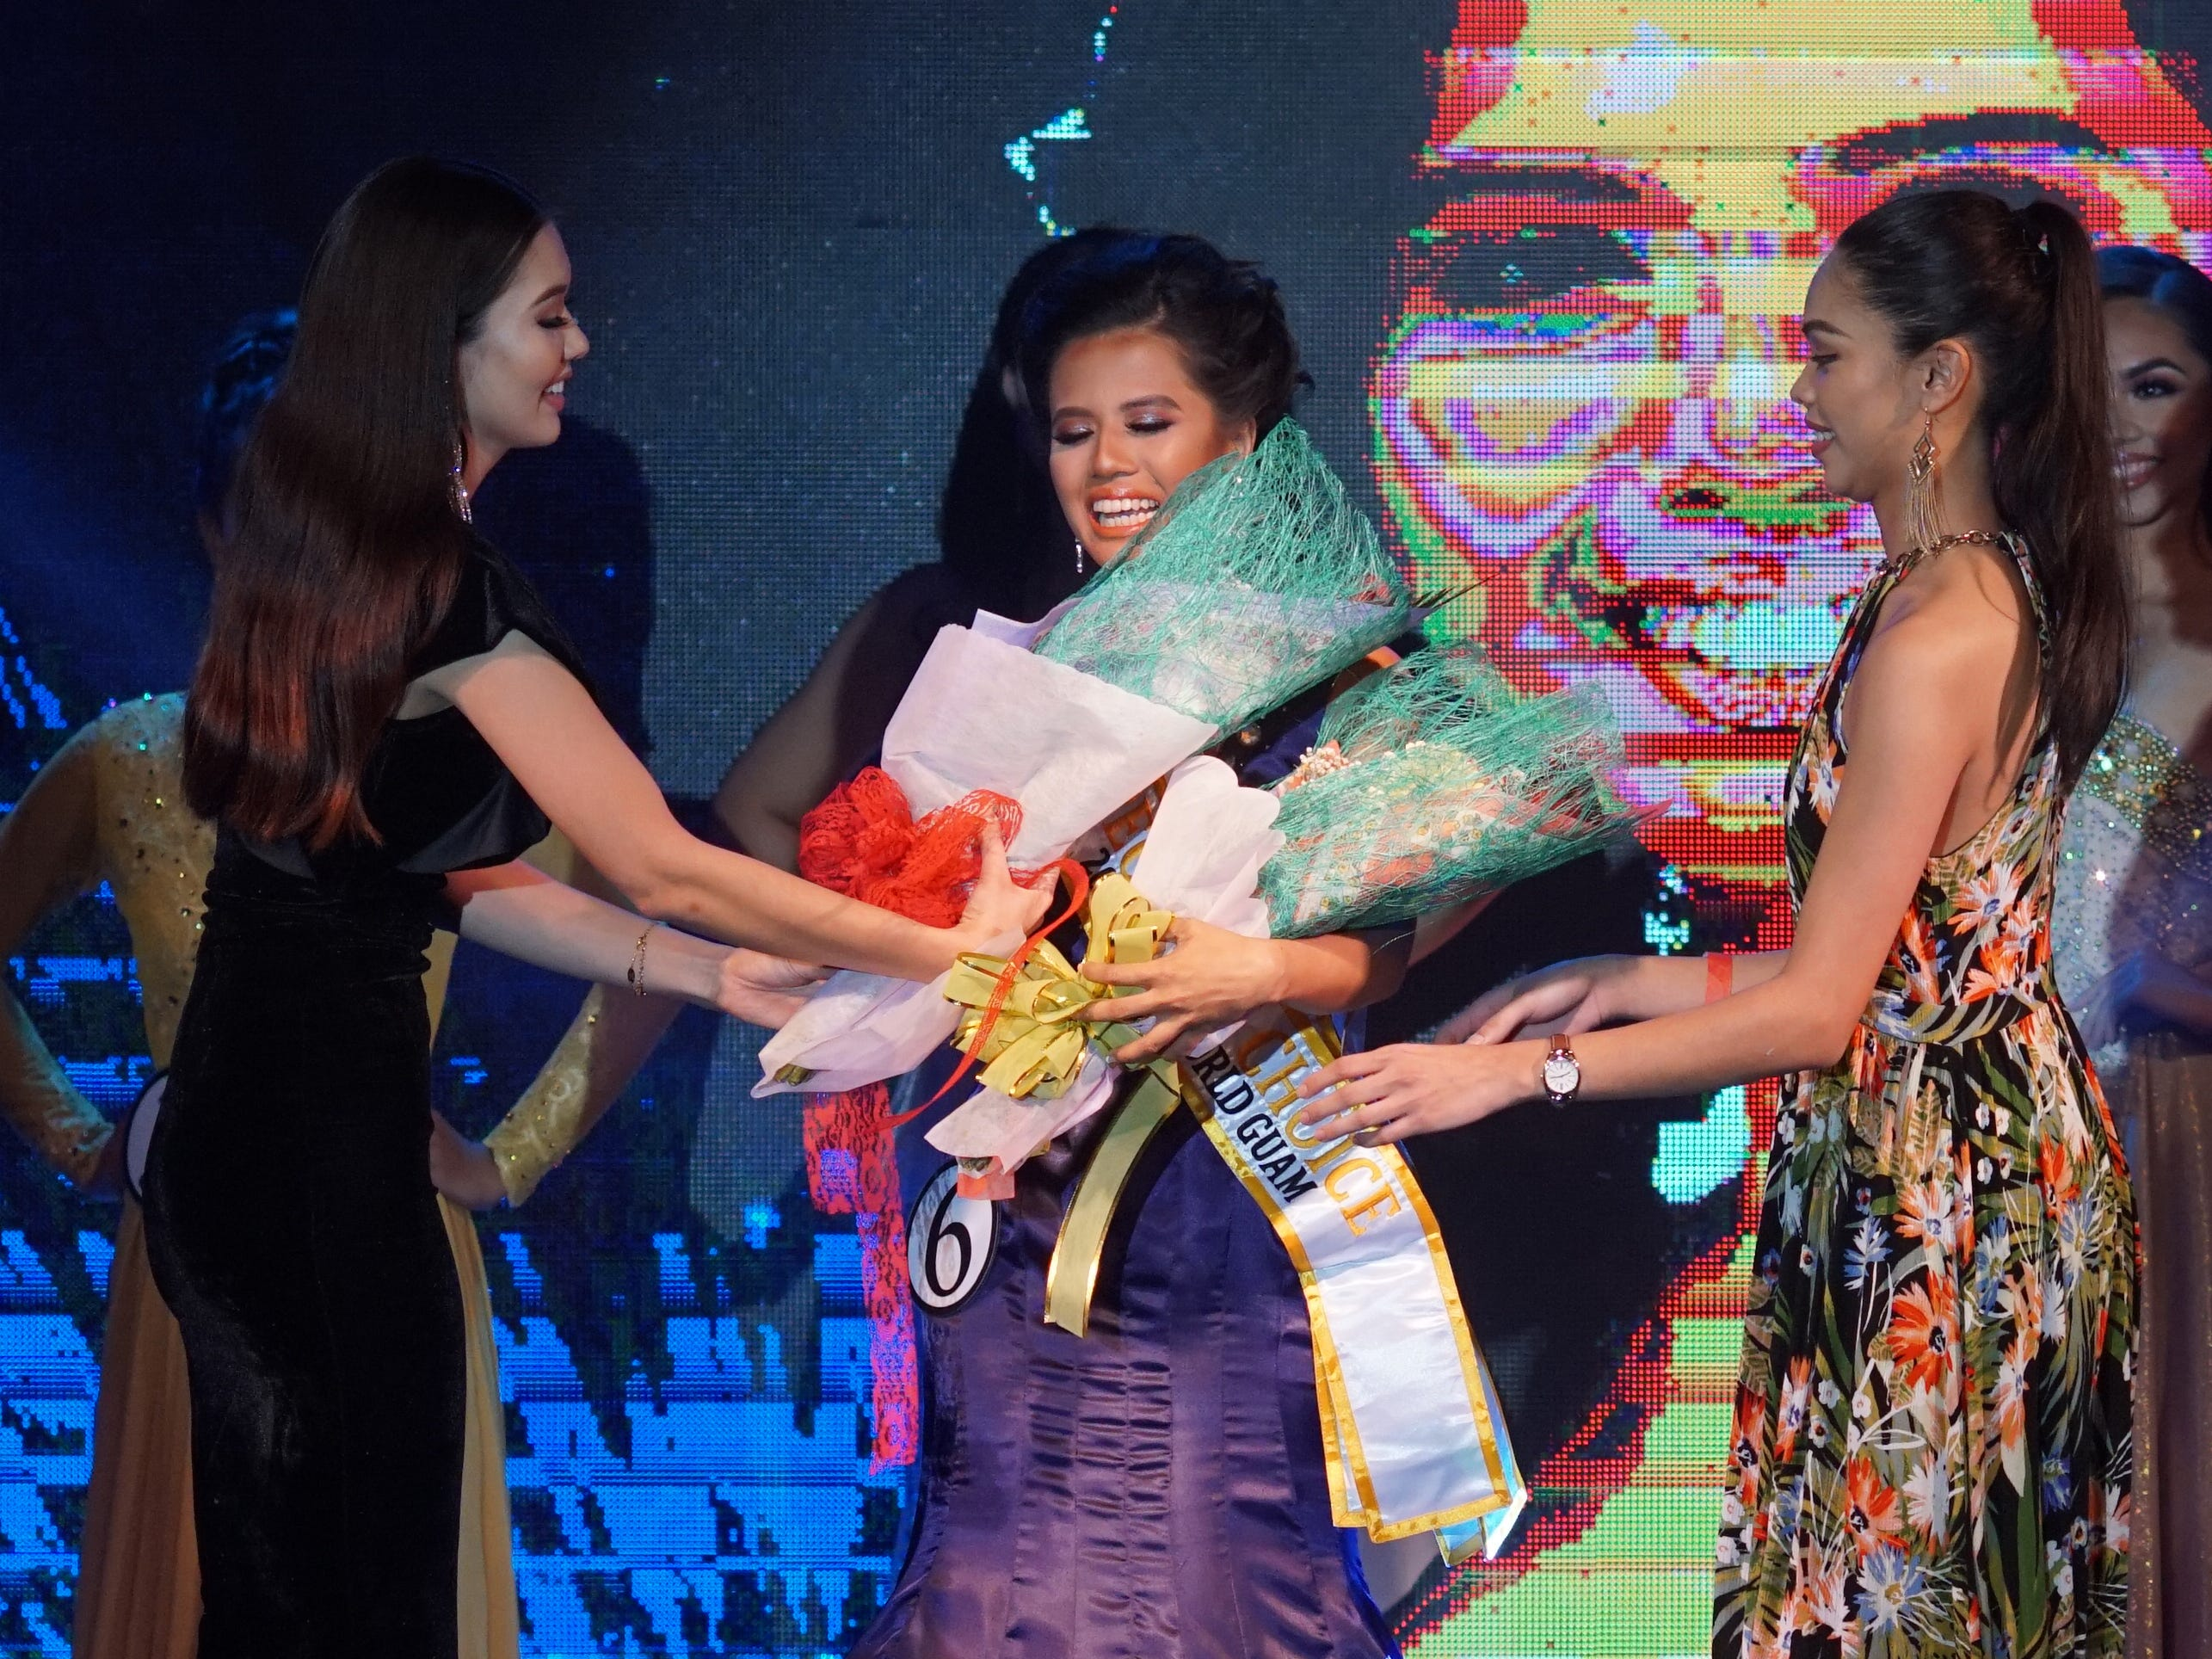 Contestant #6 Grace Enriquez, 24, of Barrigada, wins the People's Choice award at the 2018 Miss World Guam pageant held at Sheraton Laguna Guam Resort.